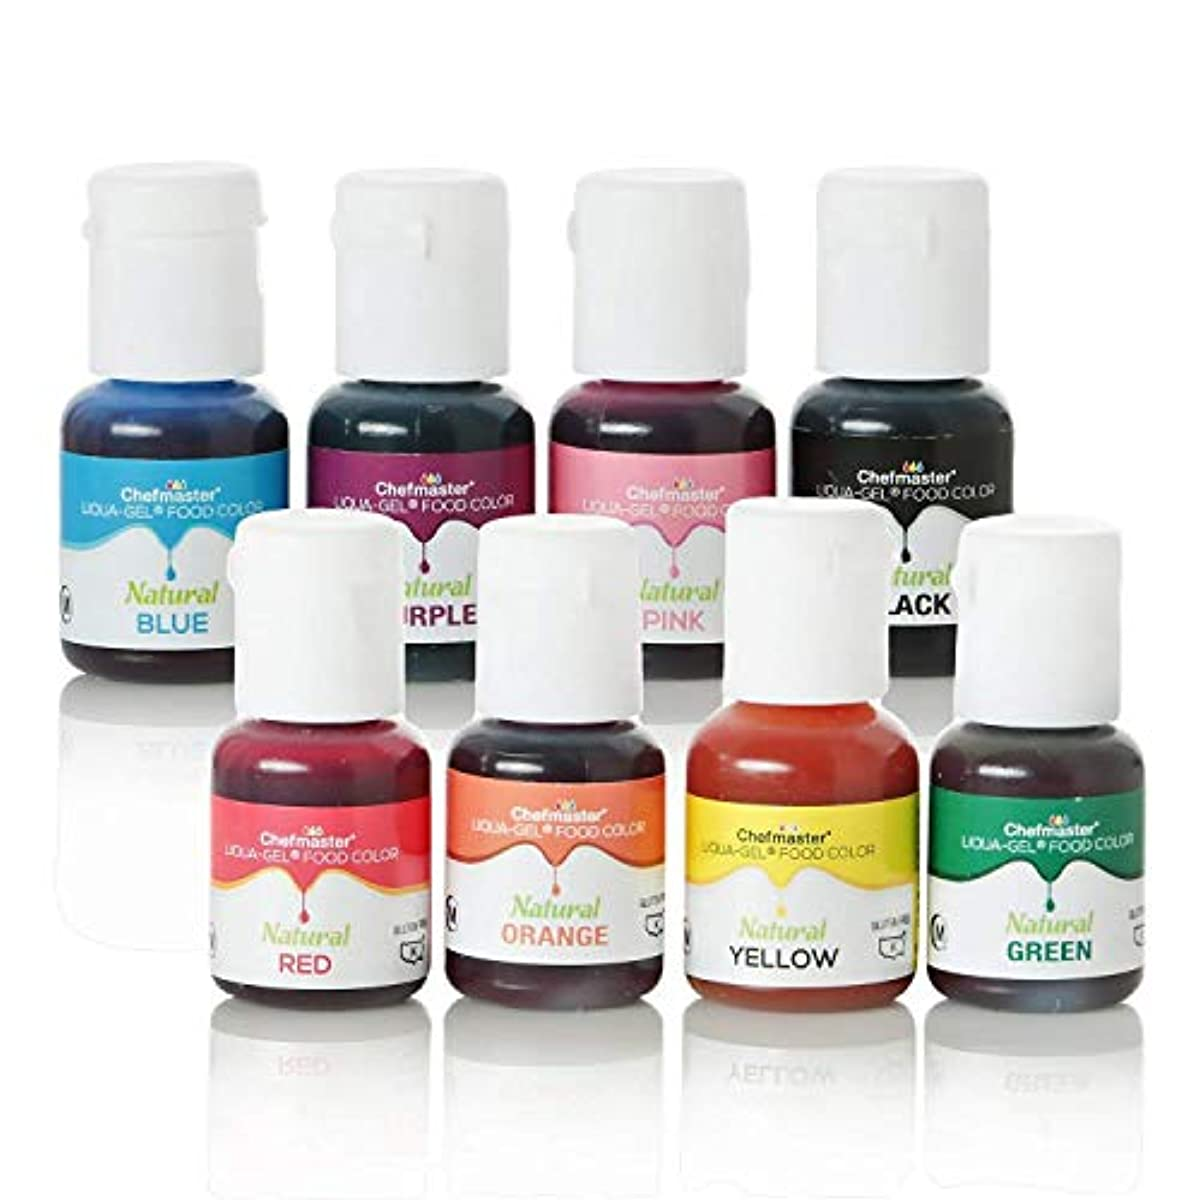 Details about Chefmaster 8 Pack All Natural Vegan-Friendly Dye Food  Coloring for Baking Icing